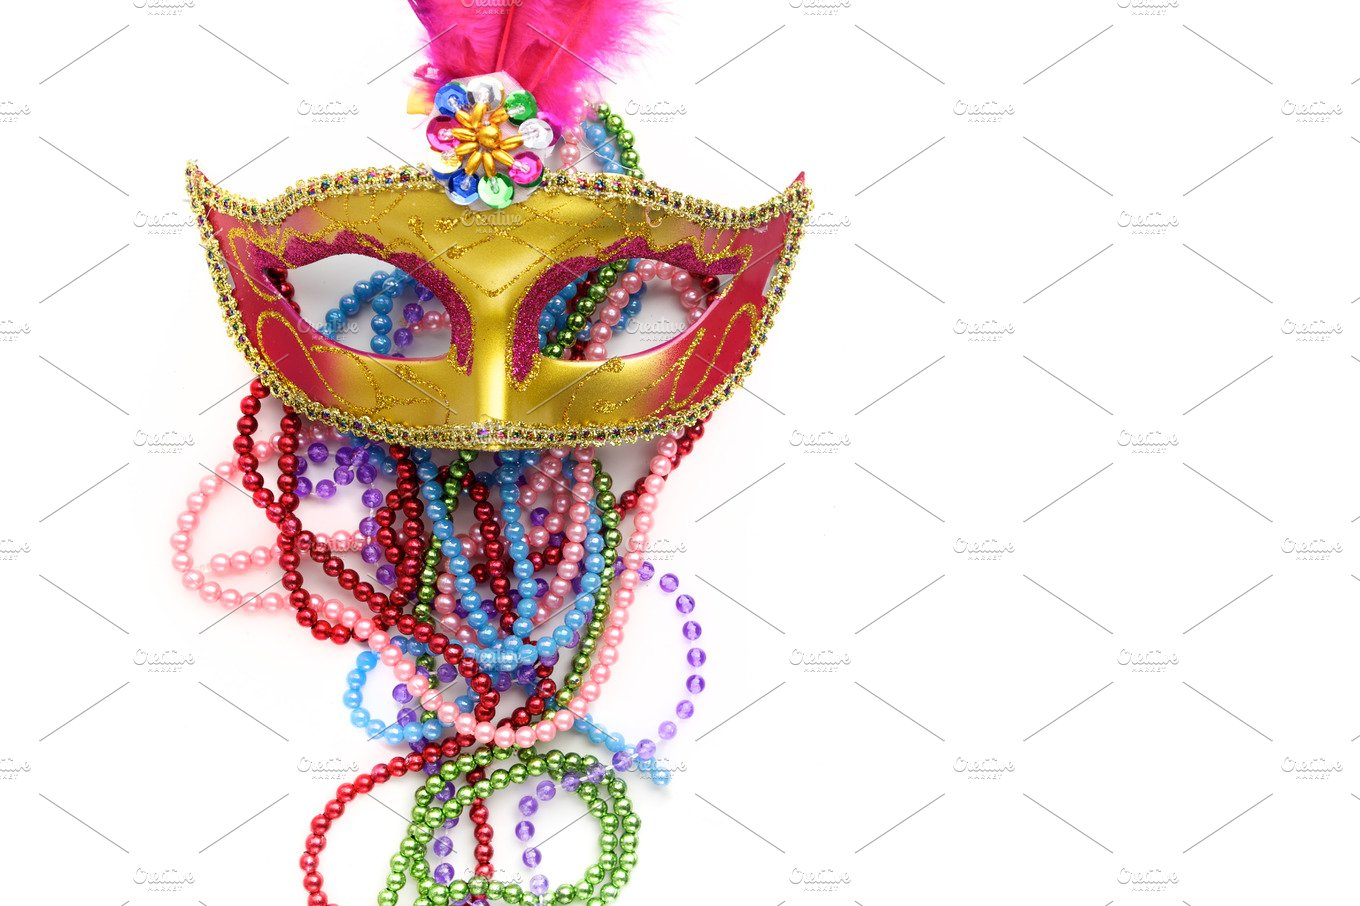 city beads mobile glorious that carnival mardi the img gras born in was celebrate